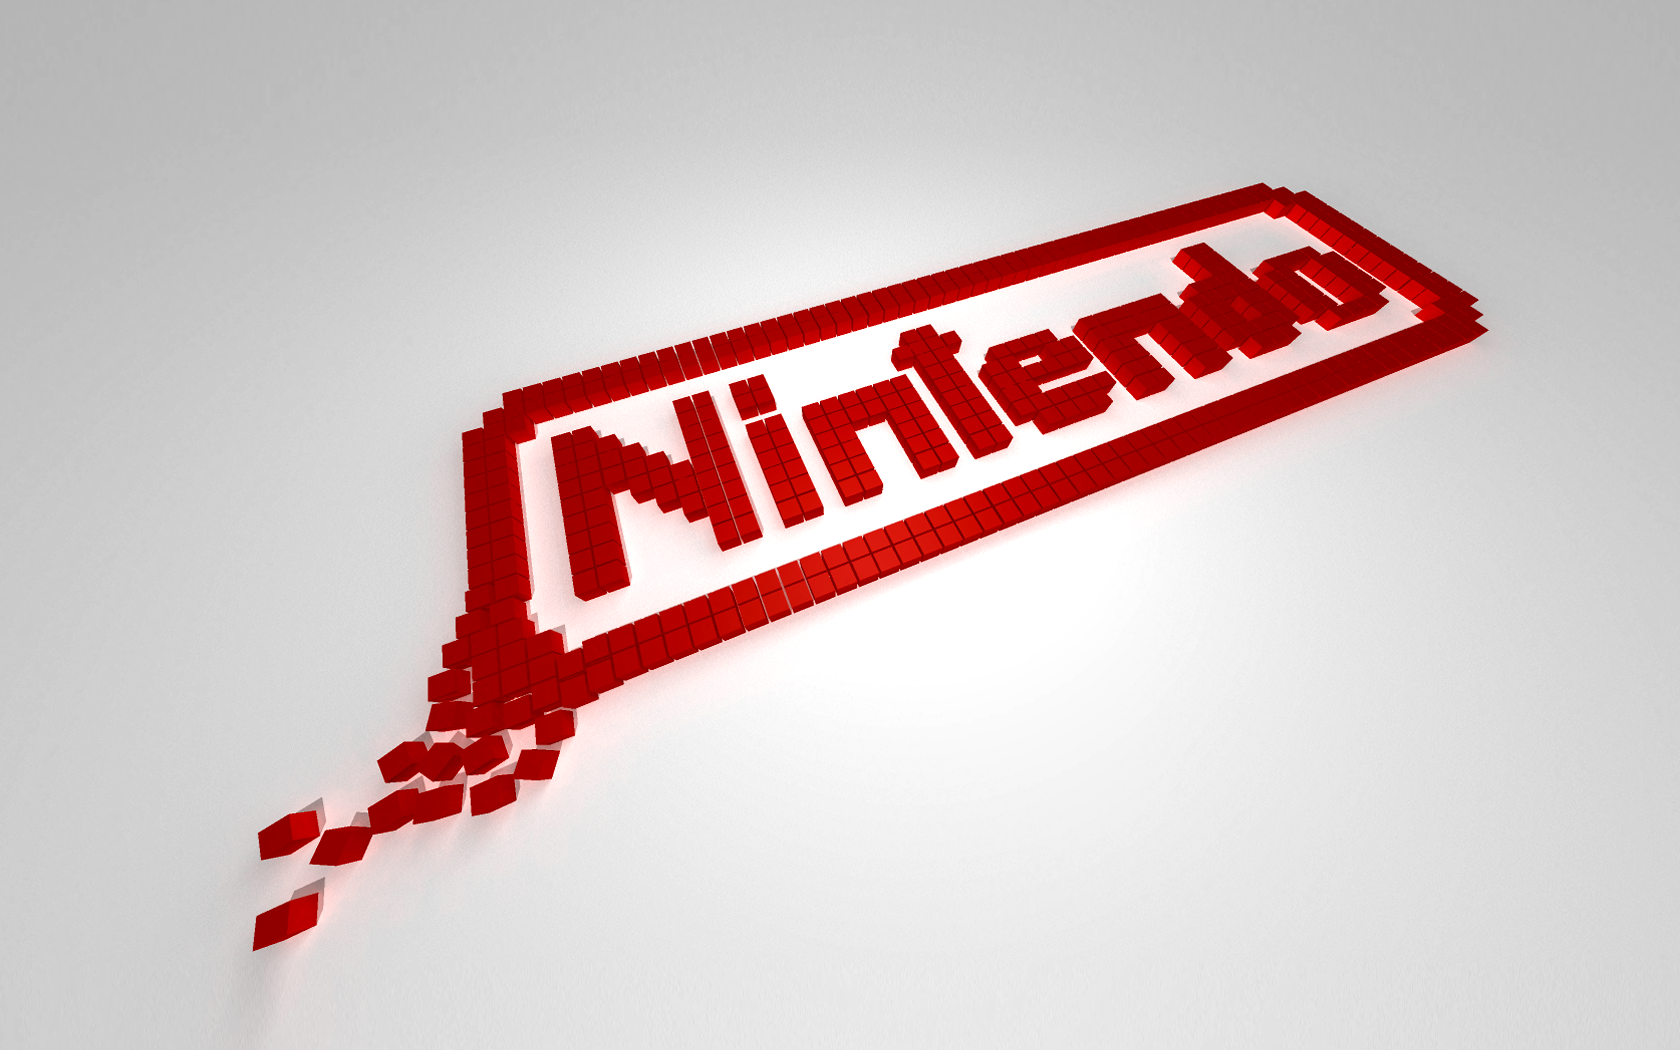 Nintendo Logo Wallpaper Desktop Background – Epic Wallpaperz